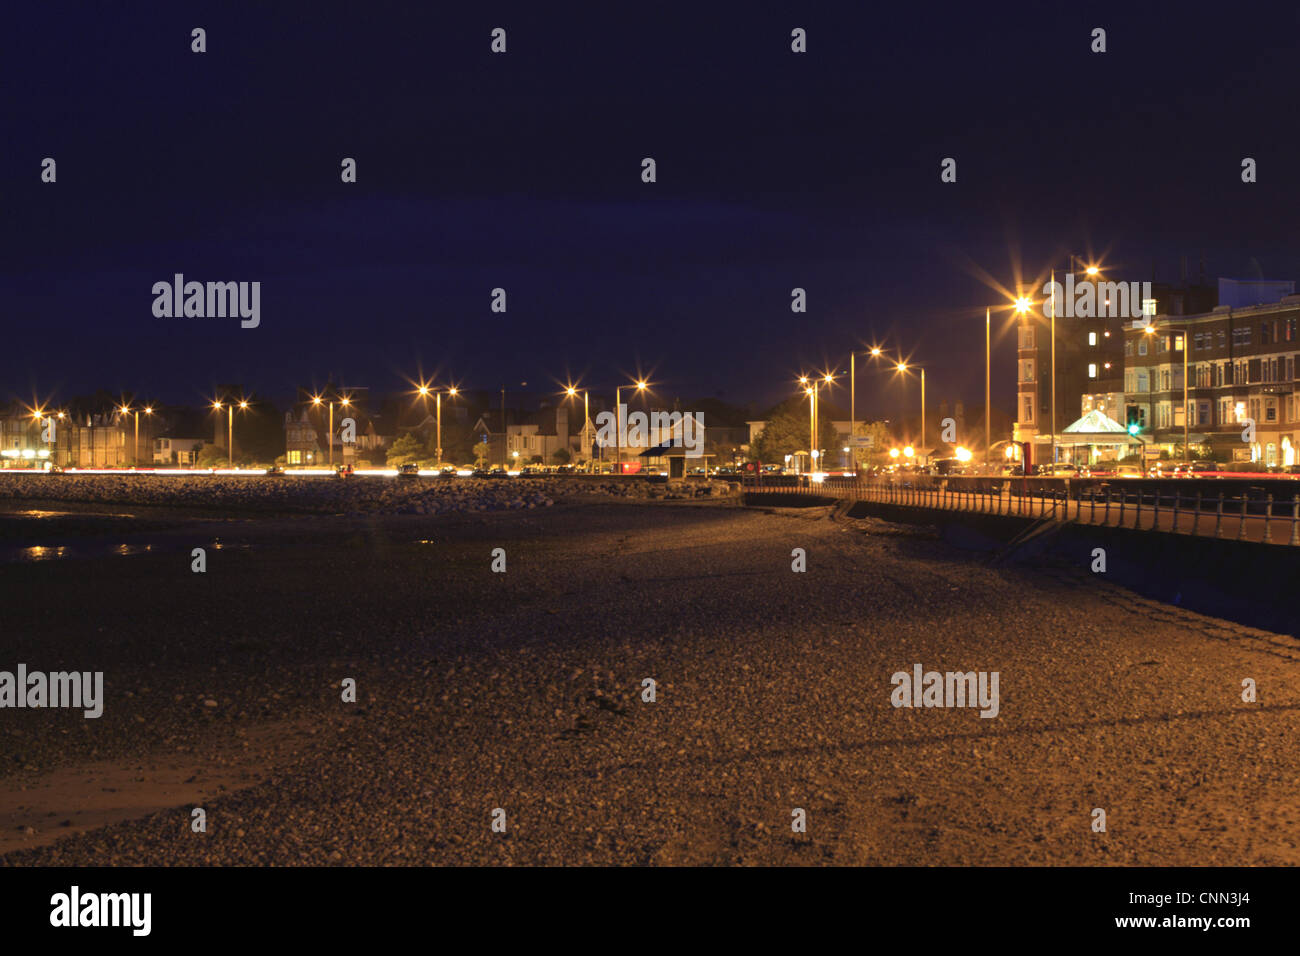 View of seaside resort town beach and promenade at night, Morecambe Promenade, Morecambe, Lancashire, England, september - Stock Image